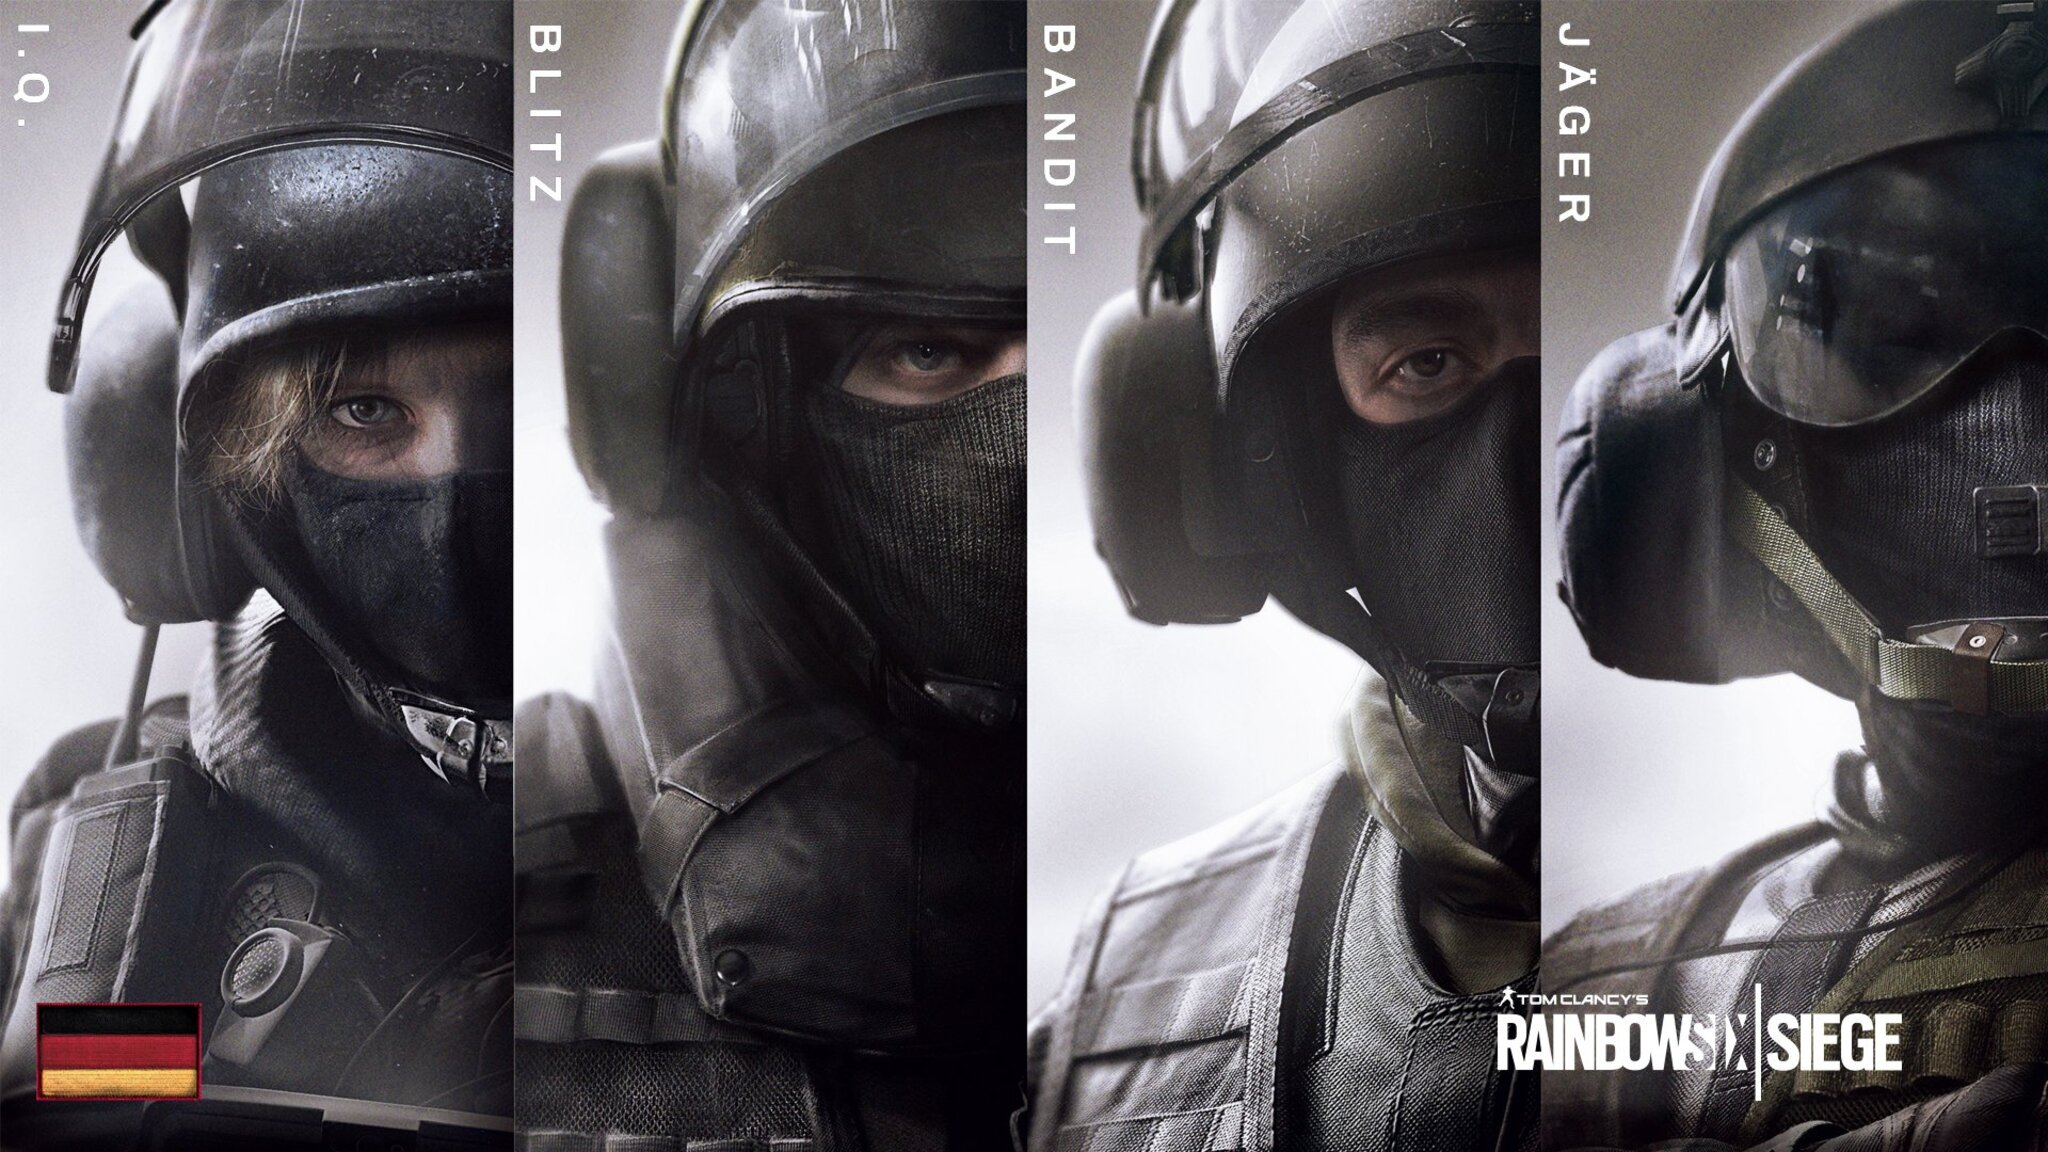 2048x1152 Rainbow Six Seige 2048x1152 Resolution Hd 4k